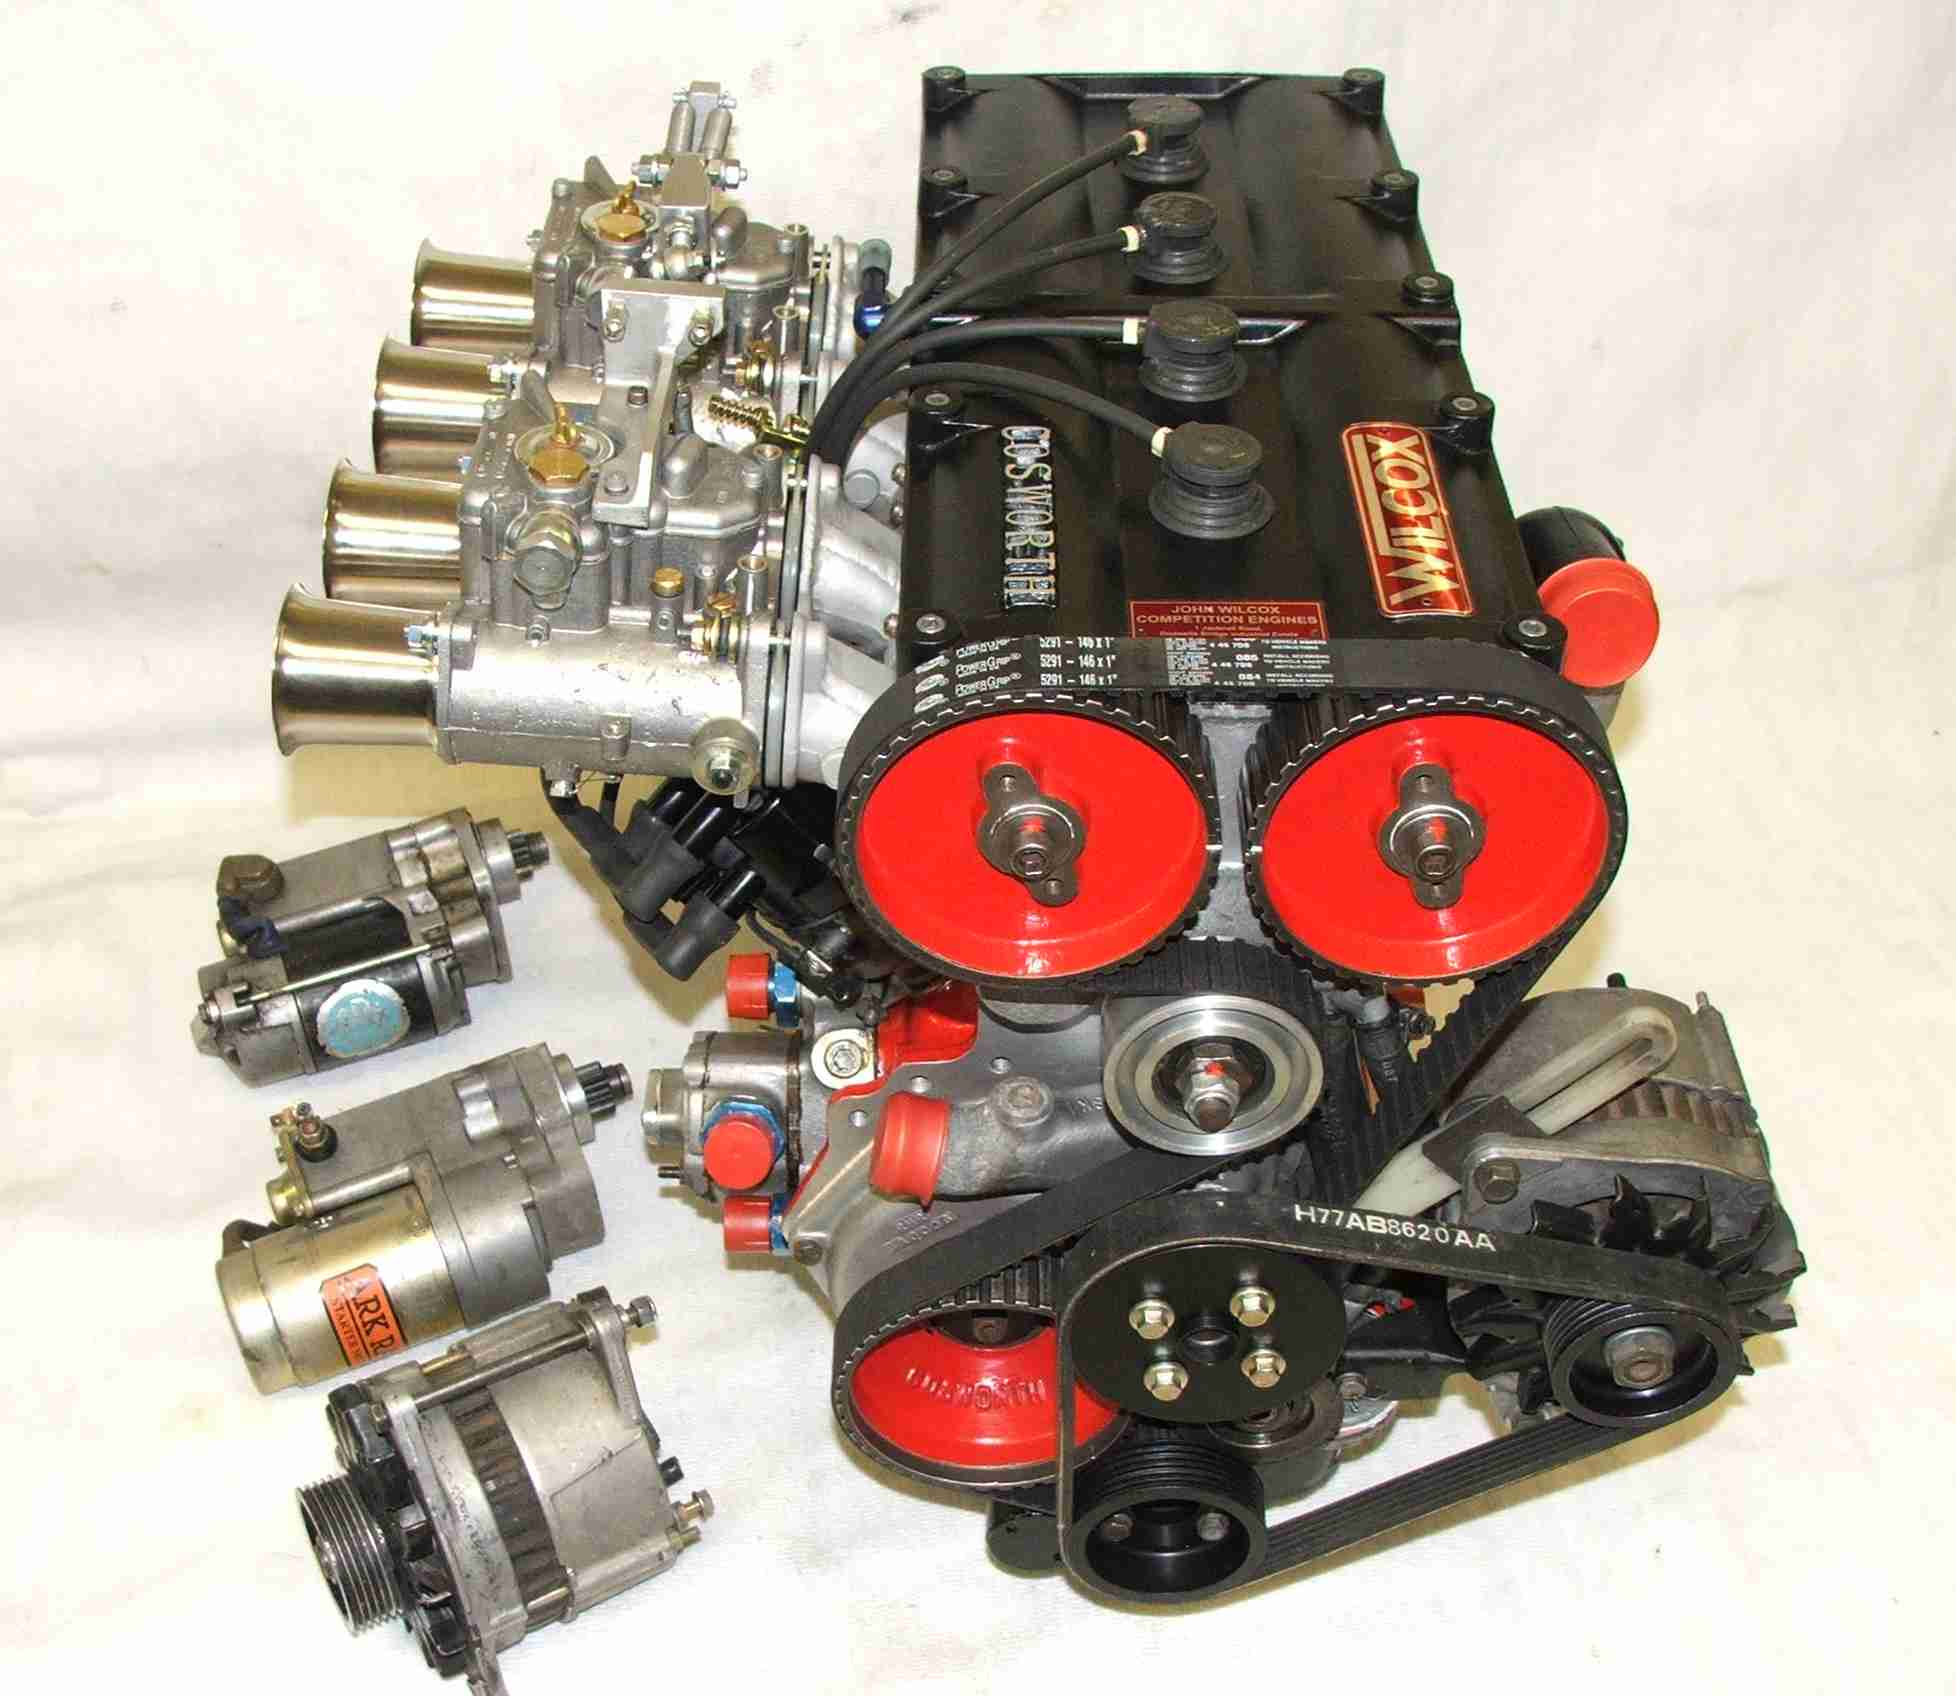 Lotus Twincam Lotus Original Twink Engines Engine